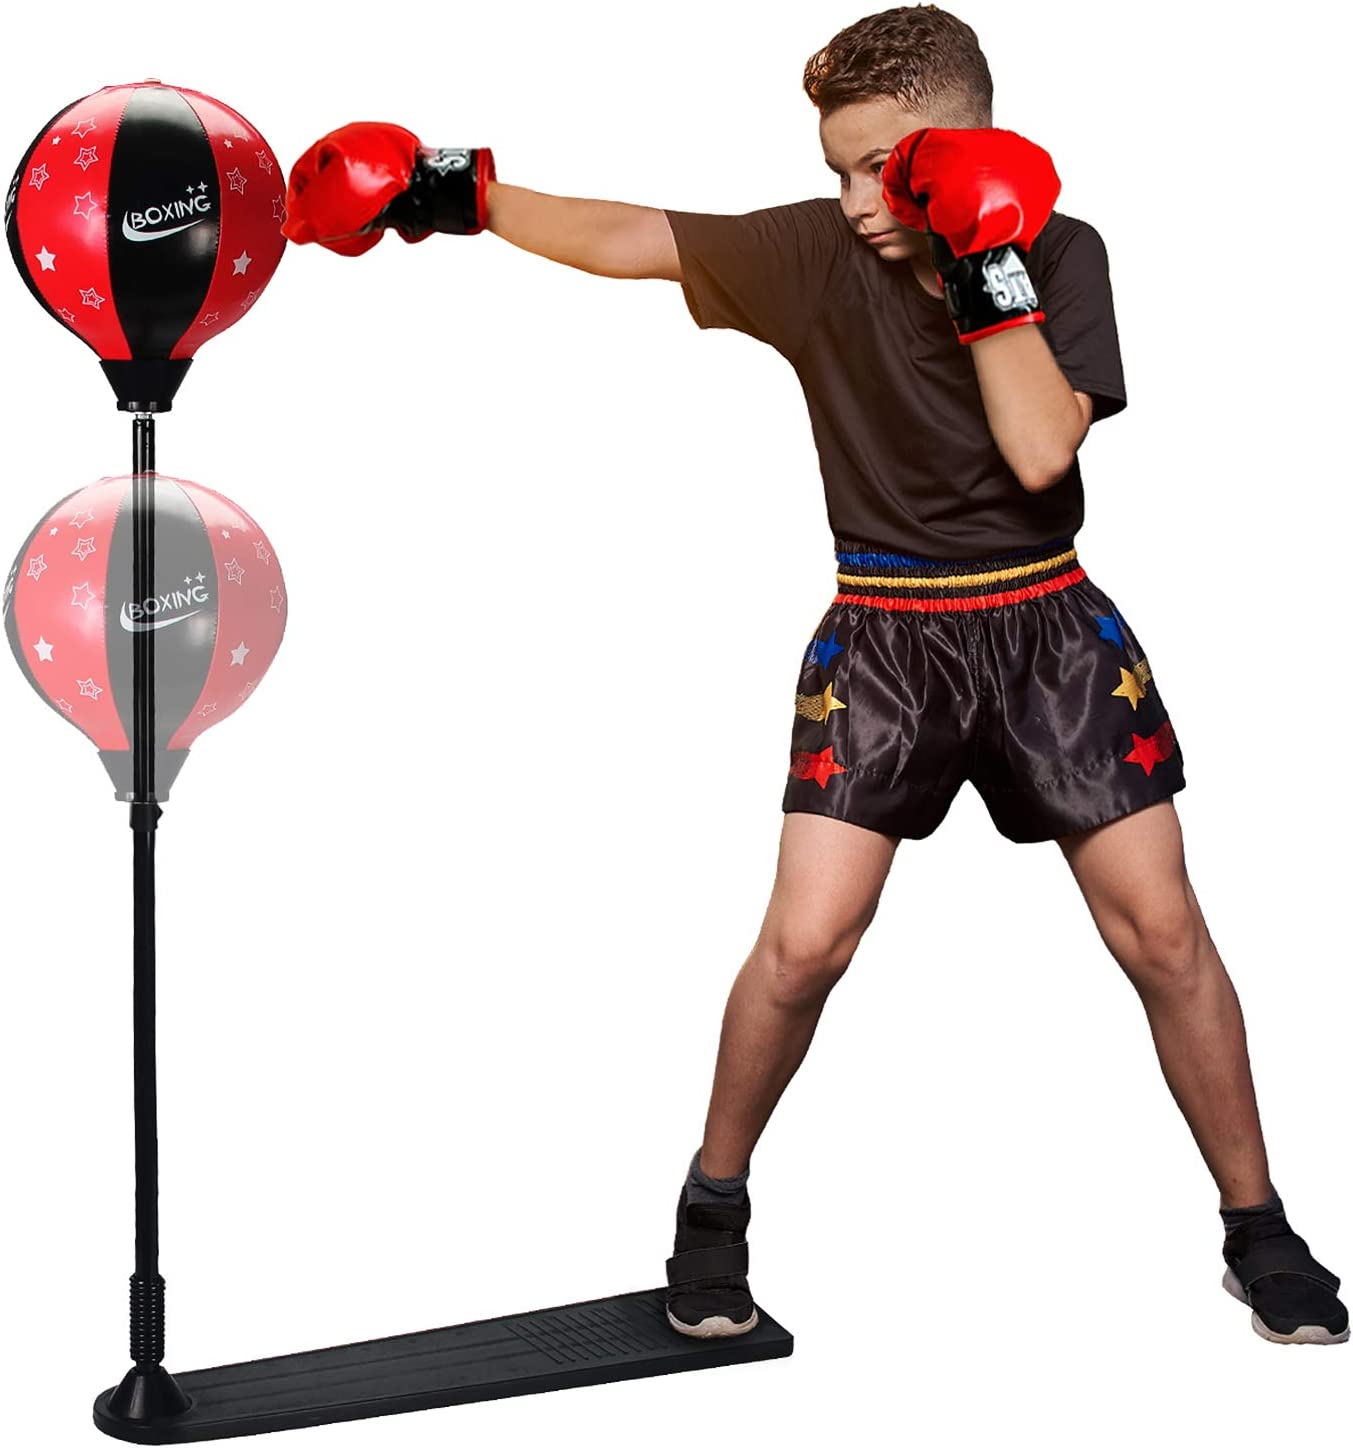 ToyVelt Punching Bag For Kids Boxing Set Includes Gloves And...